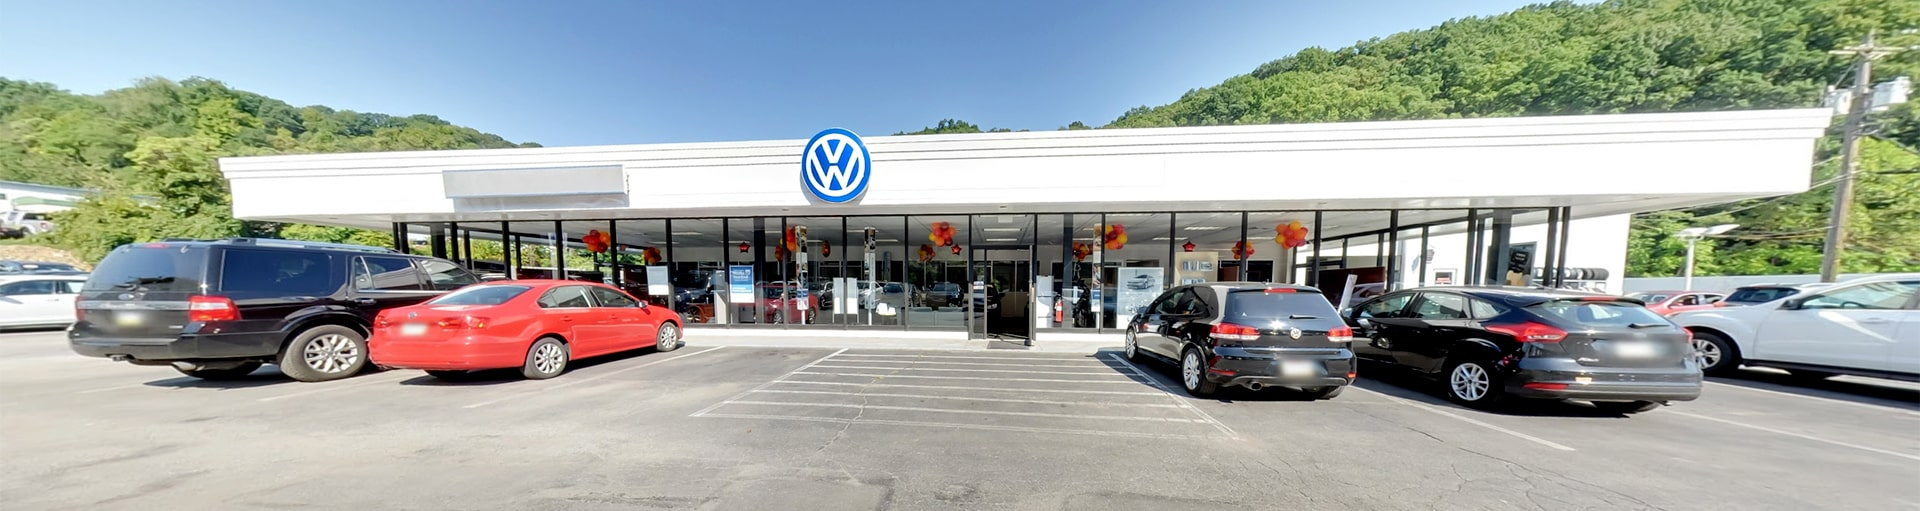 Volkswagen of Moon Township Four-Wheel Alignment